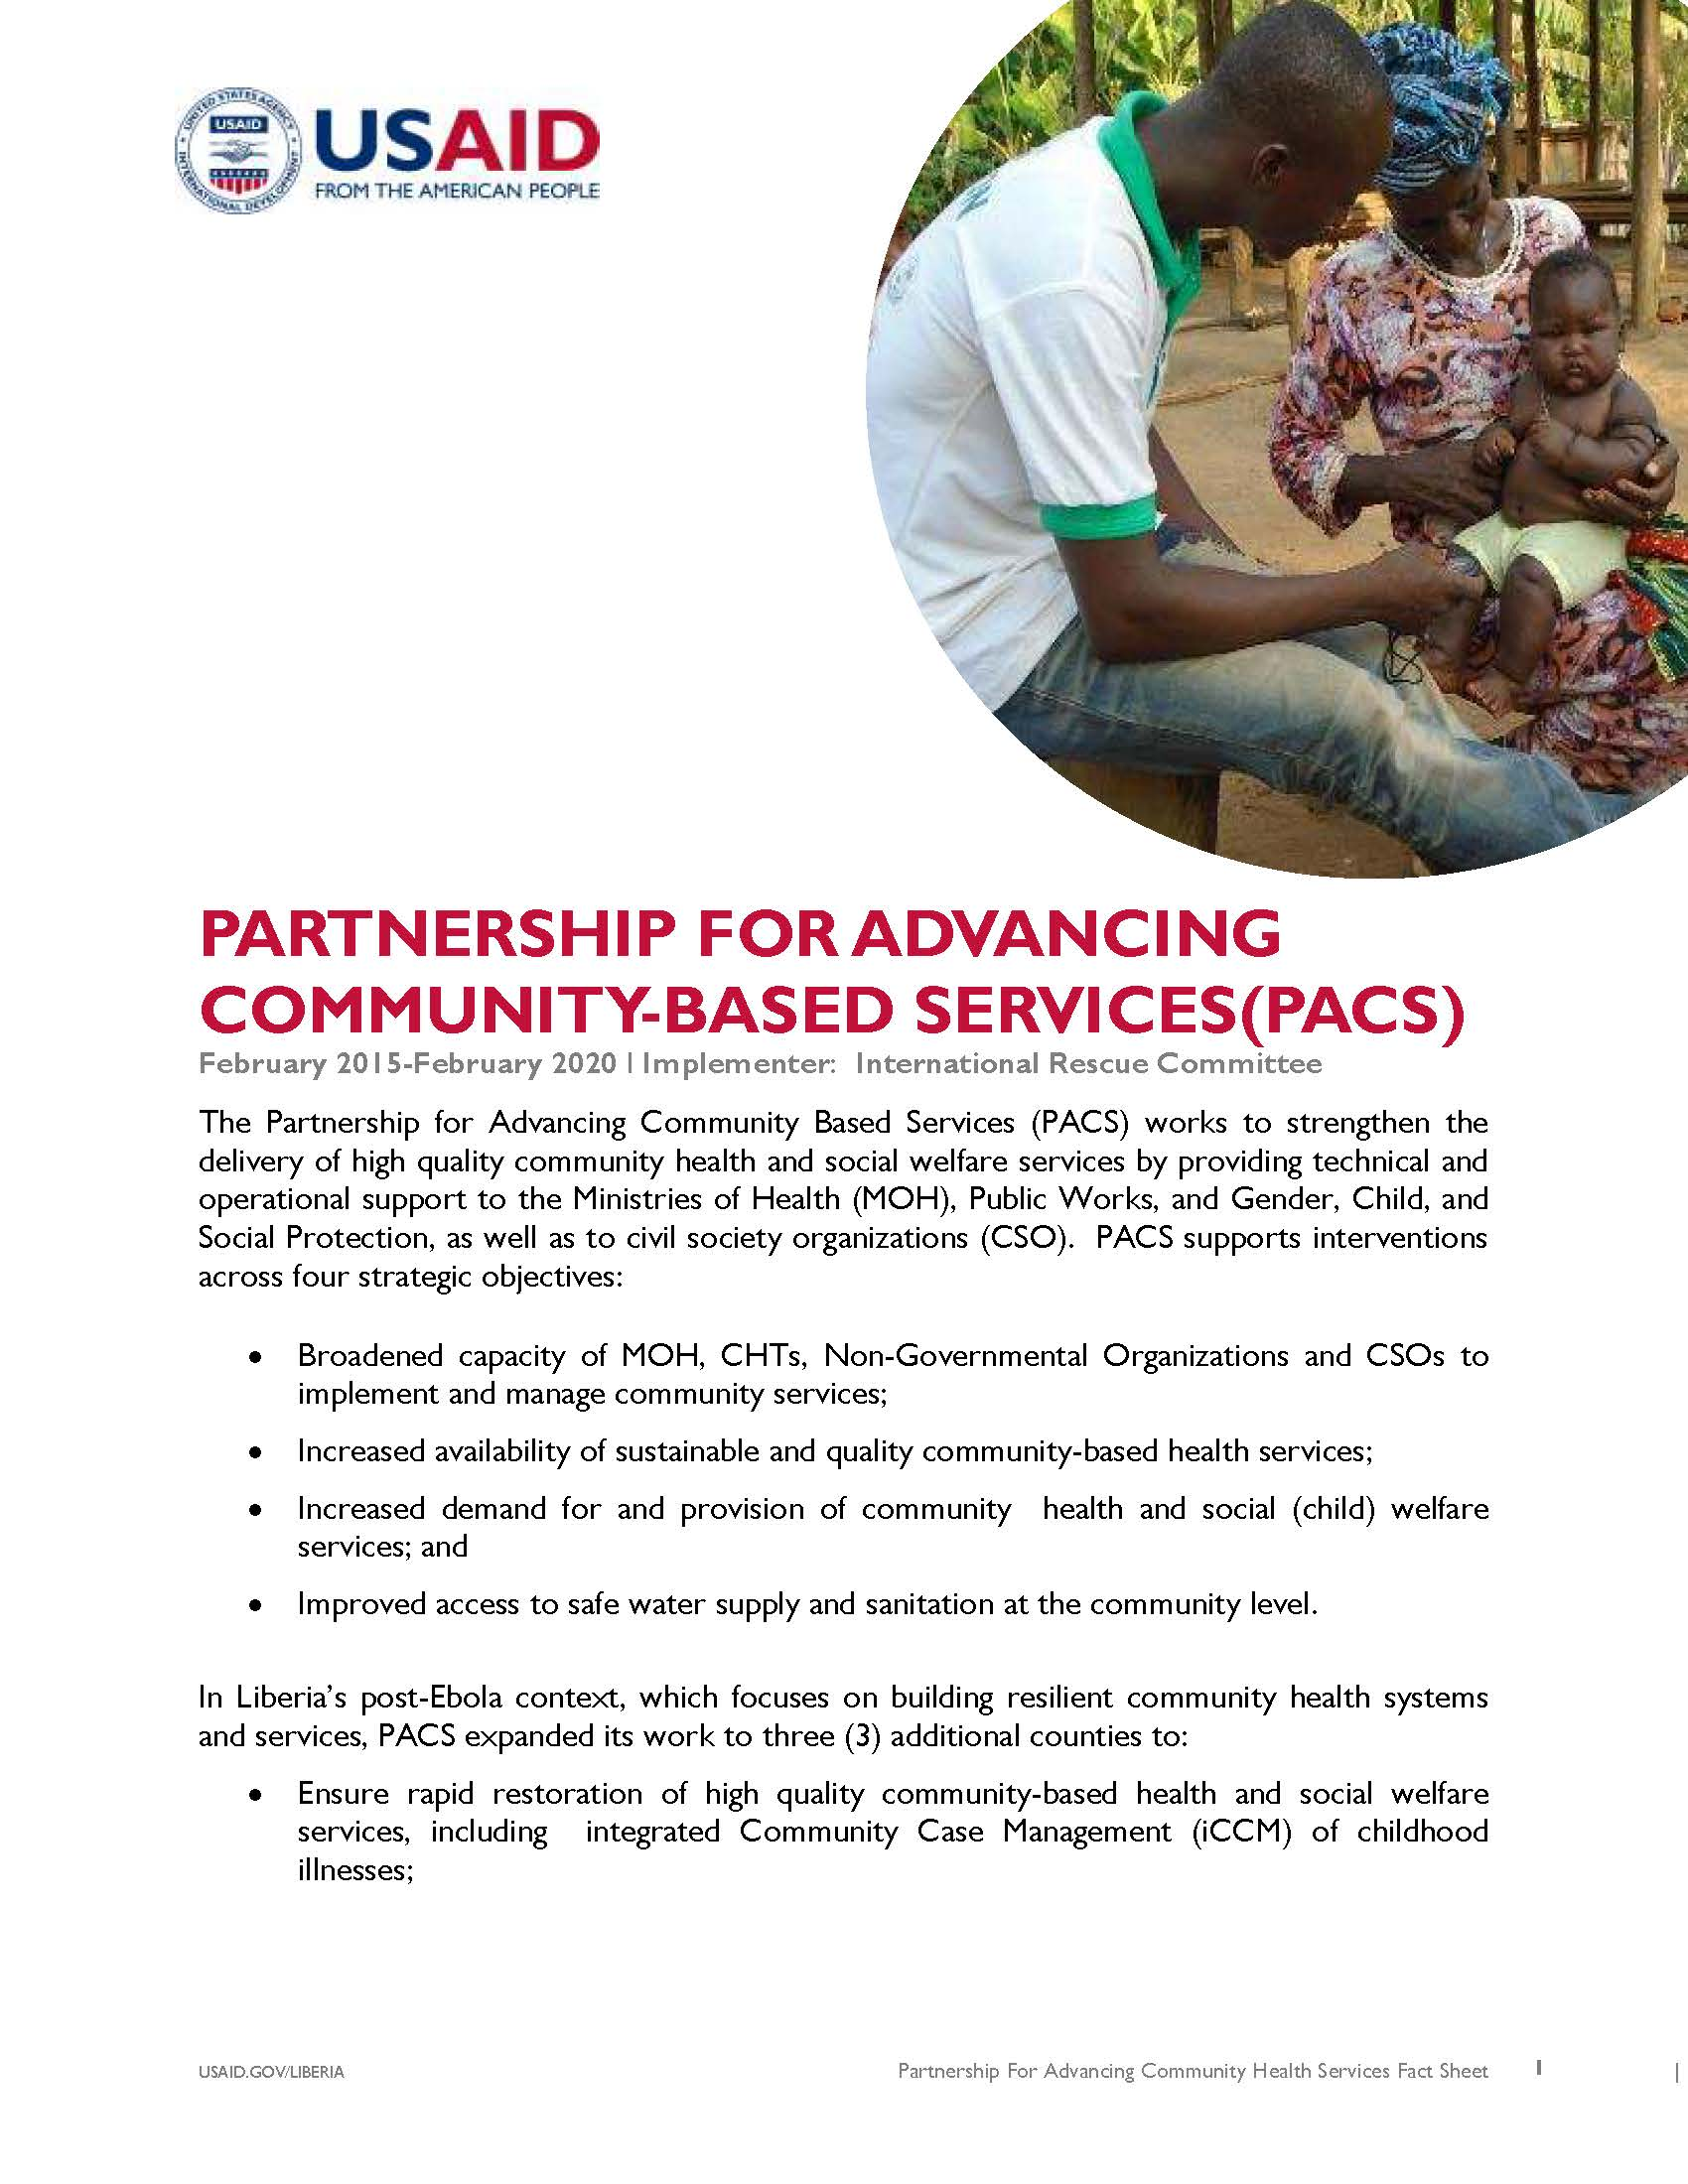 Partnership for Advancing Community Based Services Activity